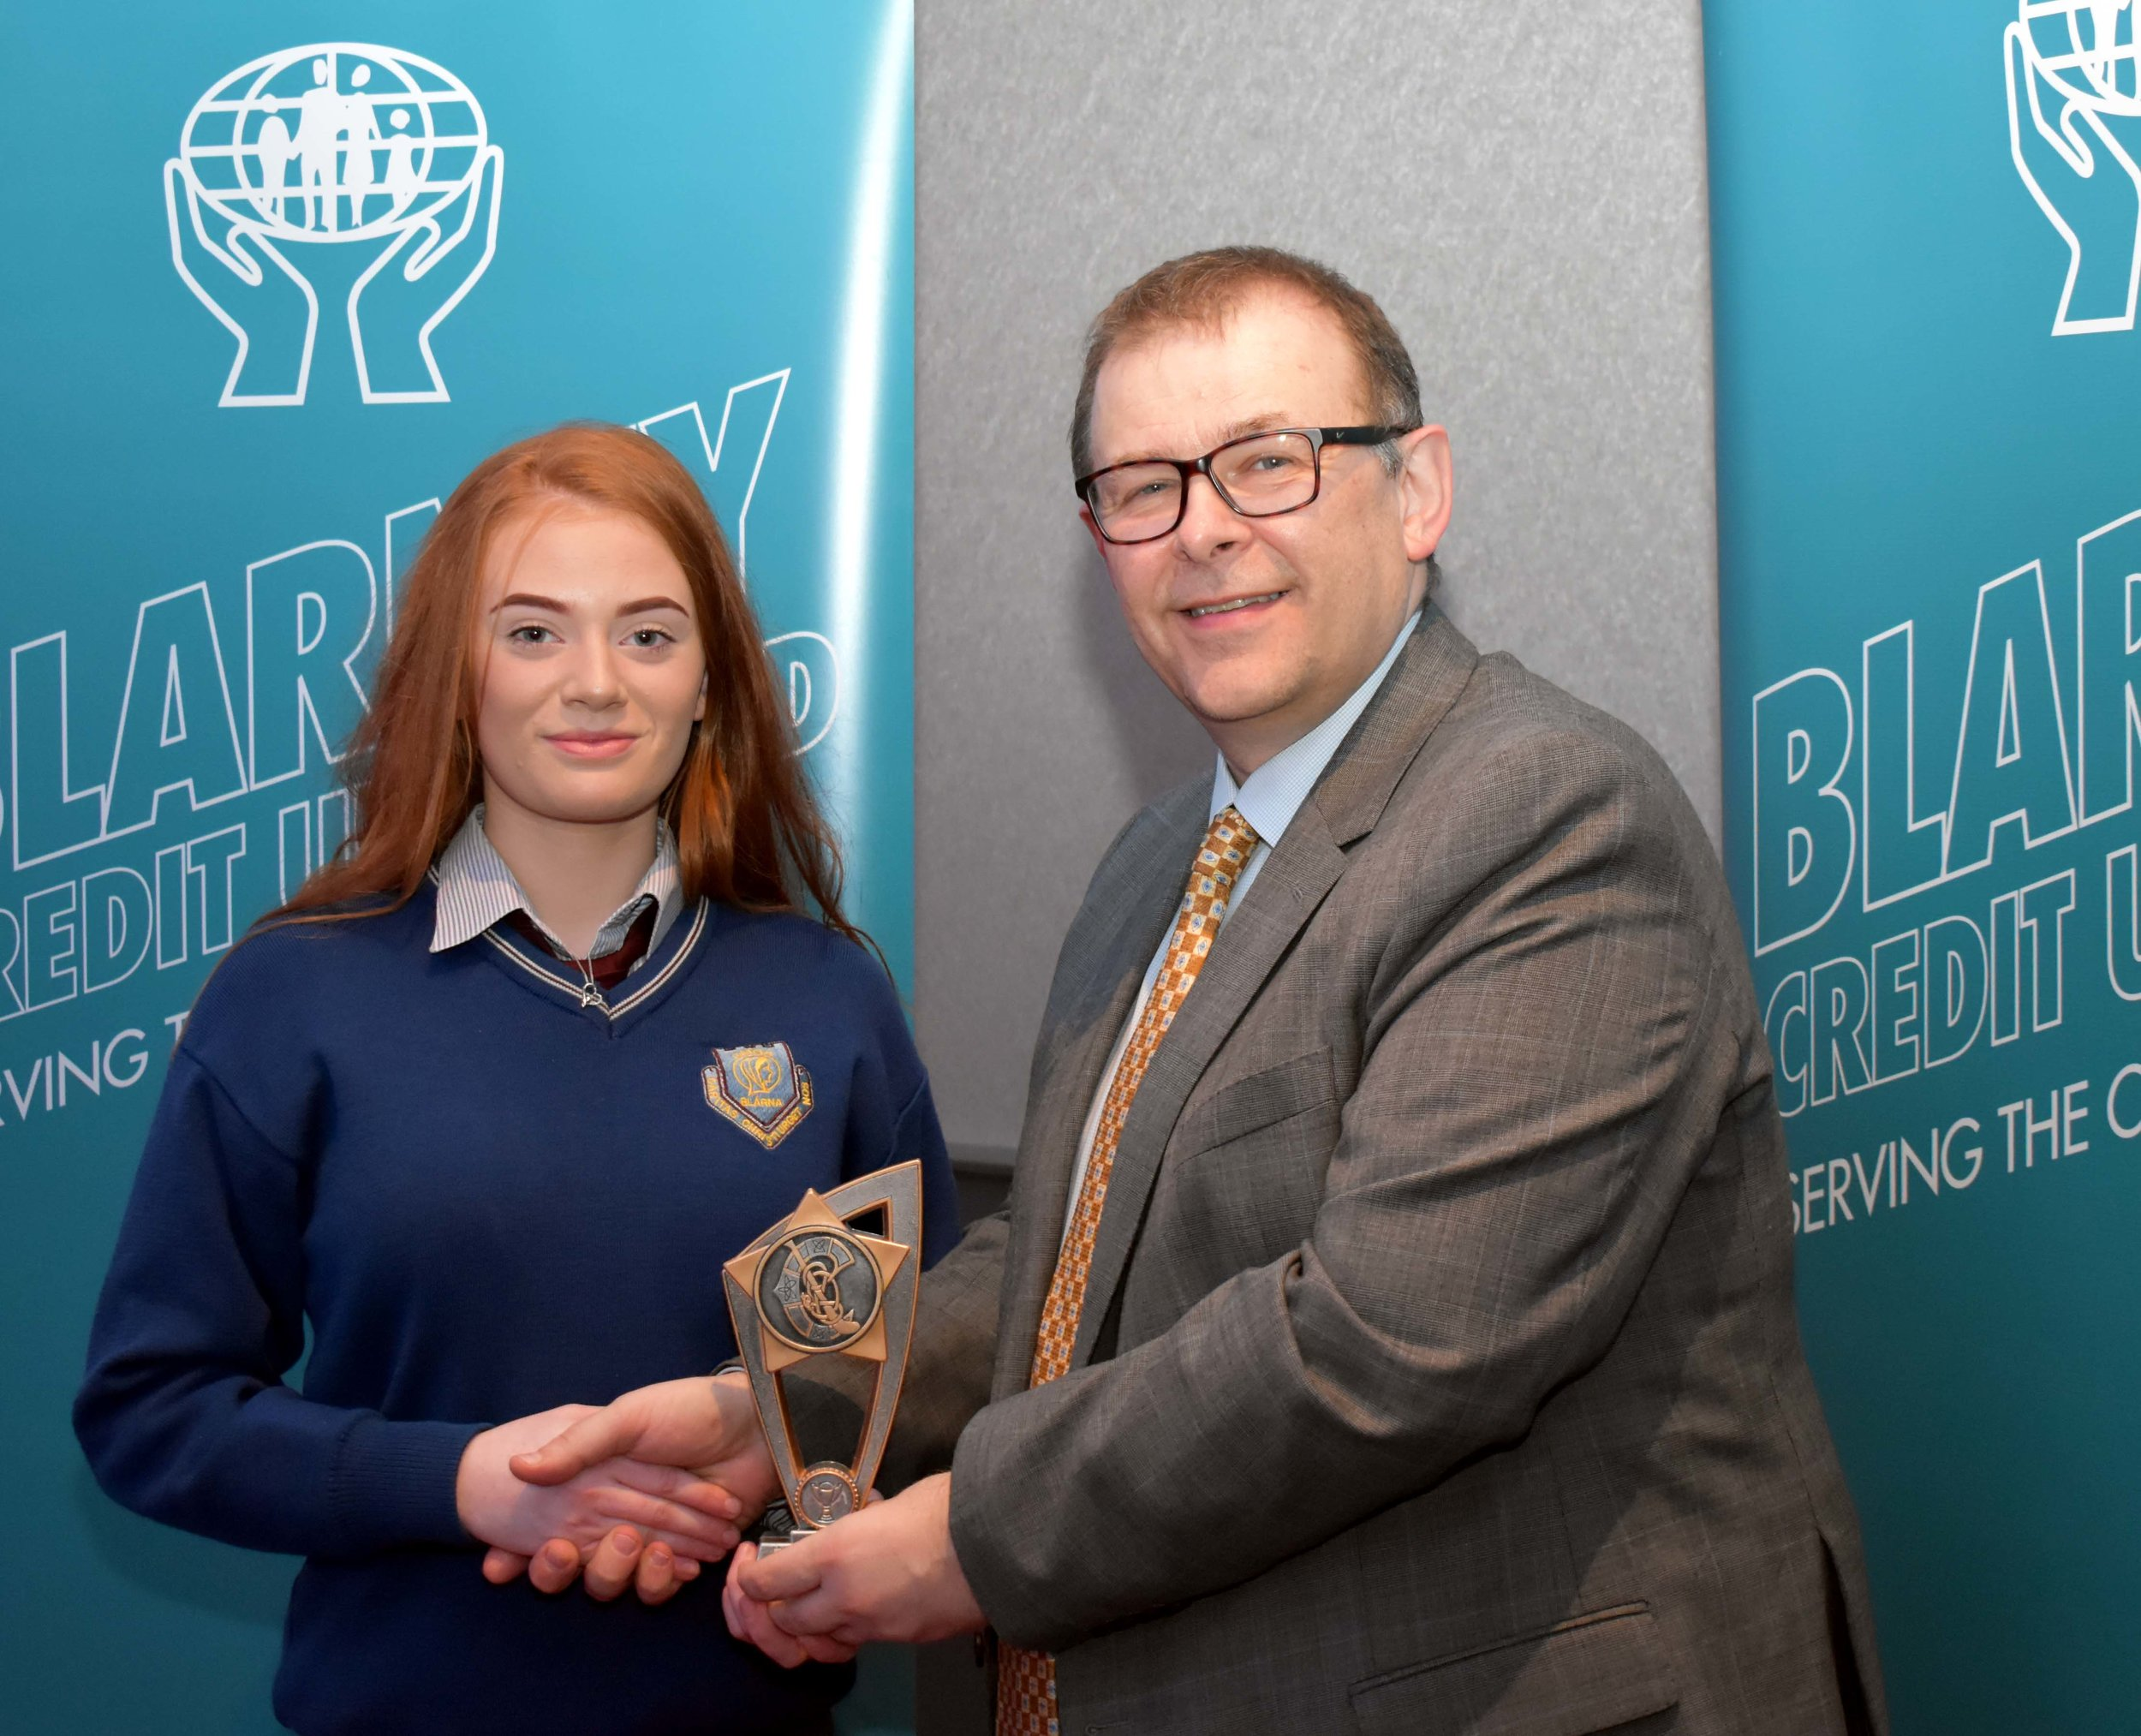 U15 Camogie Team receiving an endeavour award after having won All Ireland 7s in 2017. Team Captain Danielle Hendley accepting the award on behalf of the team. (Pictured with Mr. Mark McGloughlin - BOM and Blarney Credit Union)